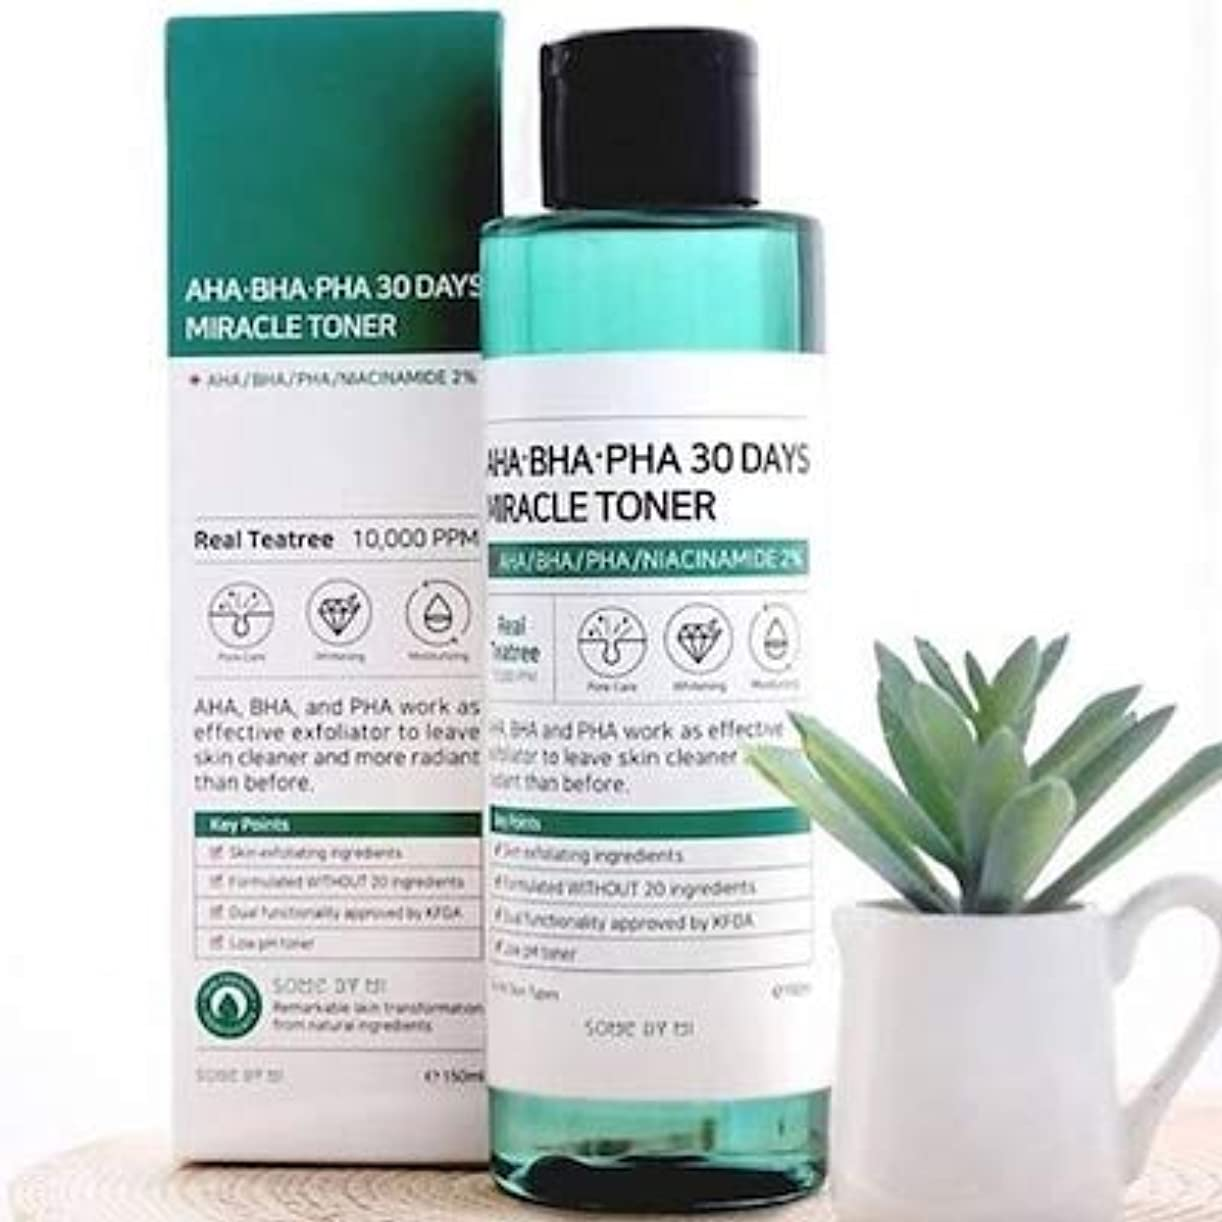 不適切なトリクル厳密にSomebymi AHA. BHA. PHA 30Days Miracle Toner 150ml/Korea Cosmetic [並行輸入品]